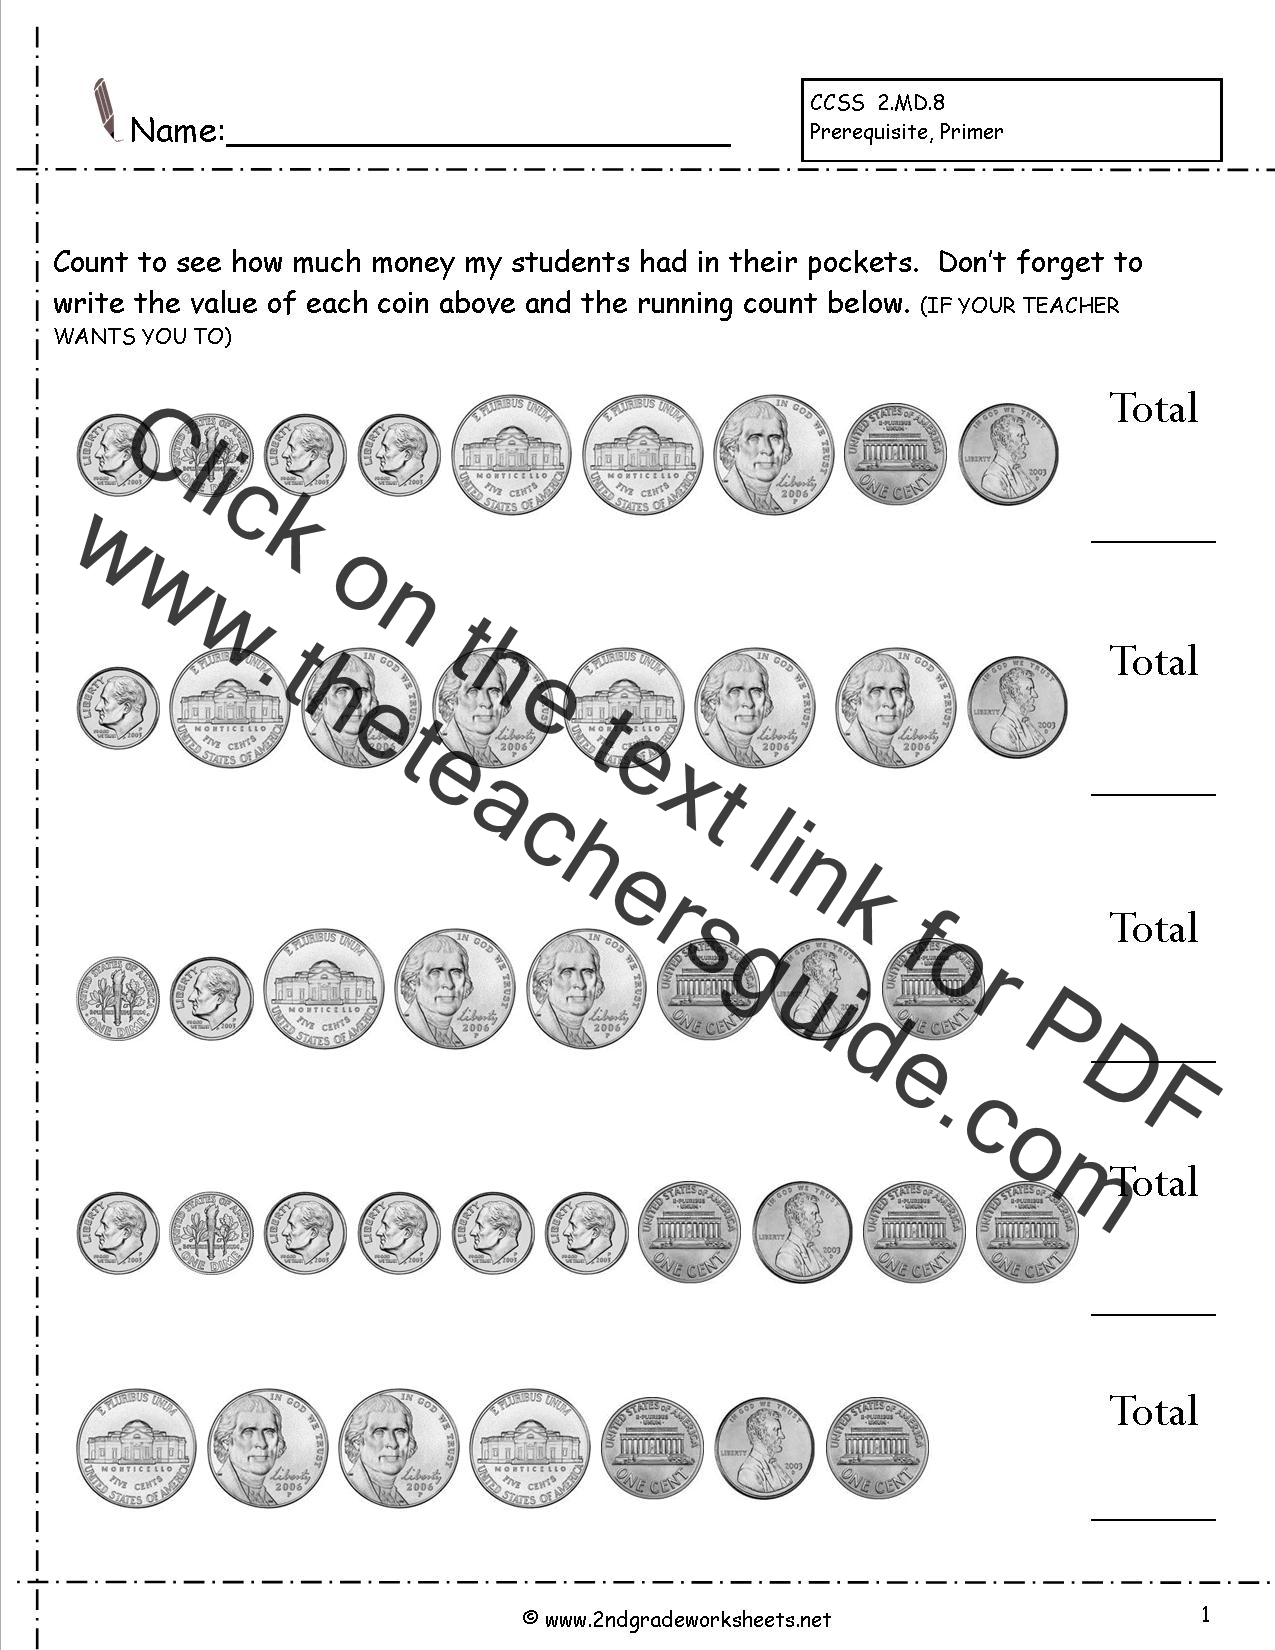 Worksheets Coin Counting Worksheets counting coins and money worksheets printouts without quarters